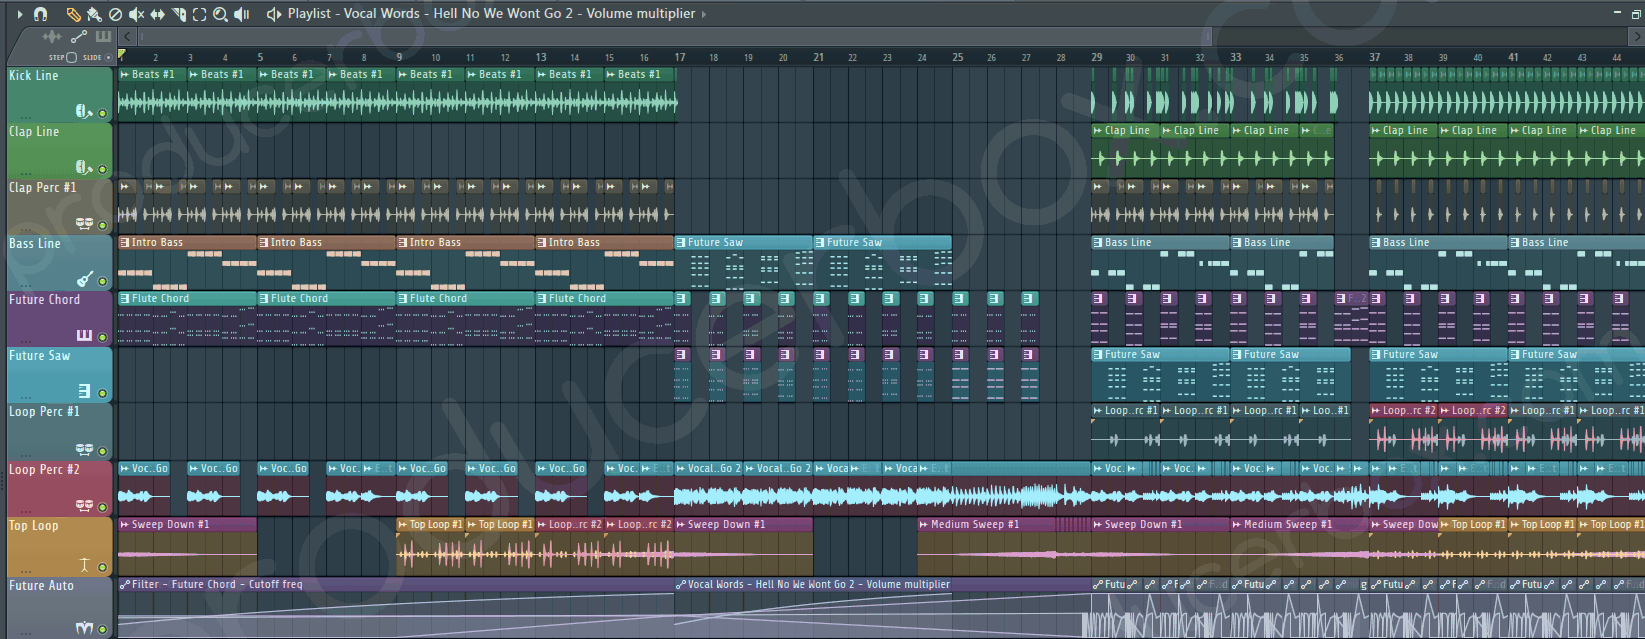 Idea Work - Future Bass Screenshot